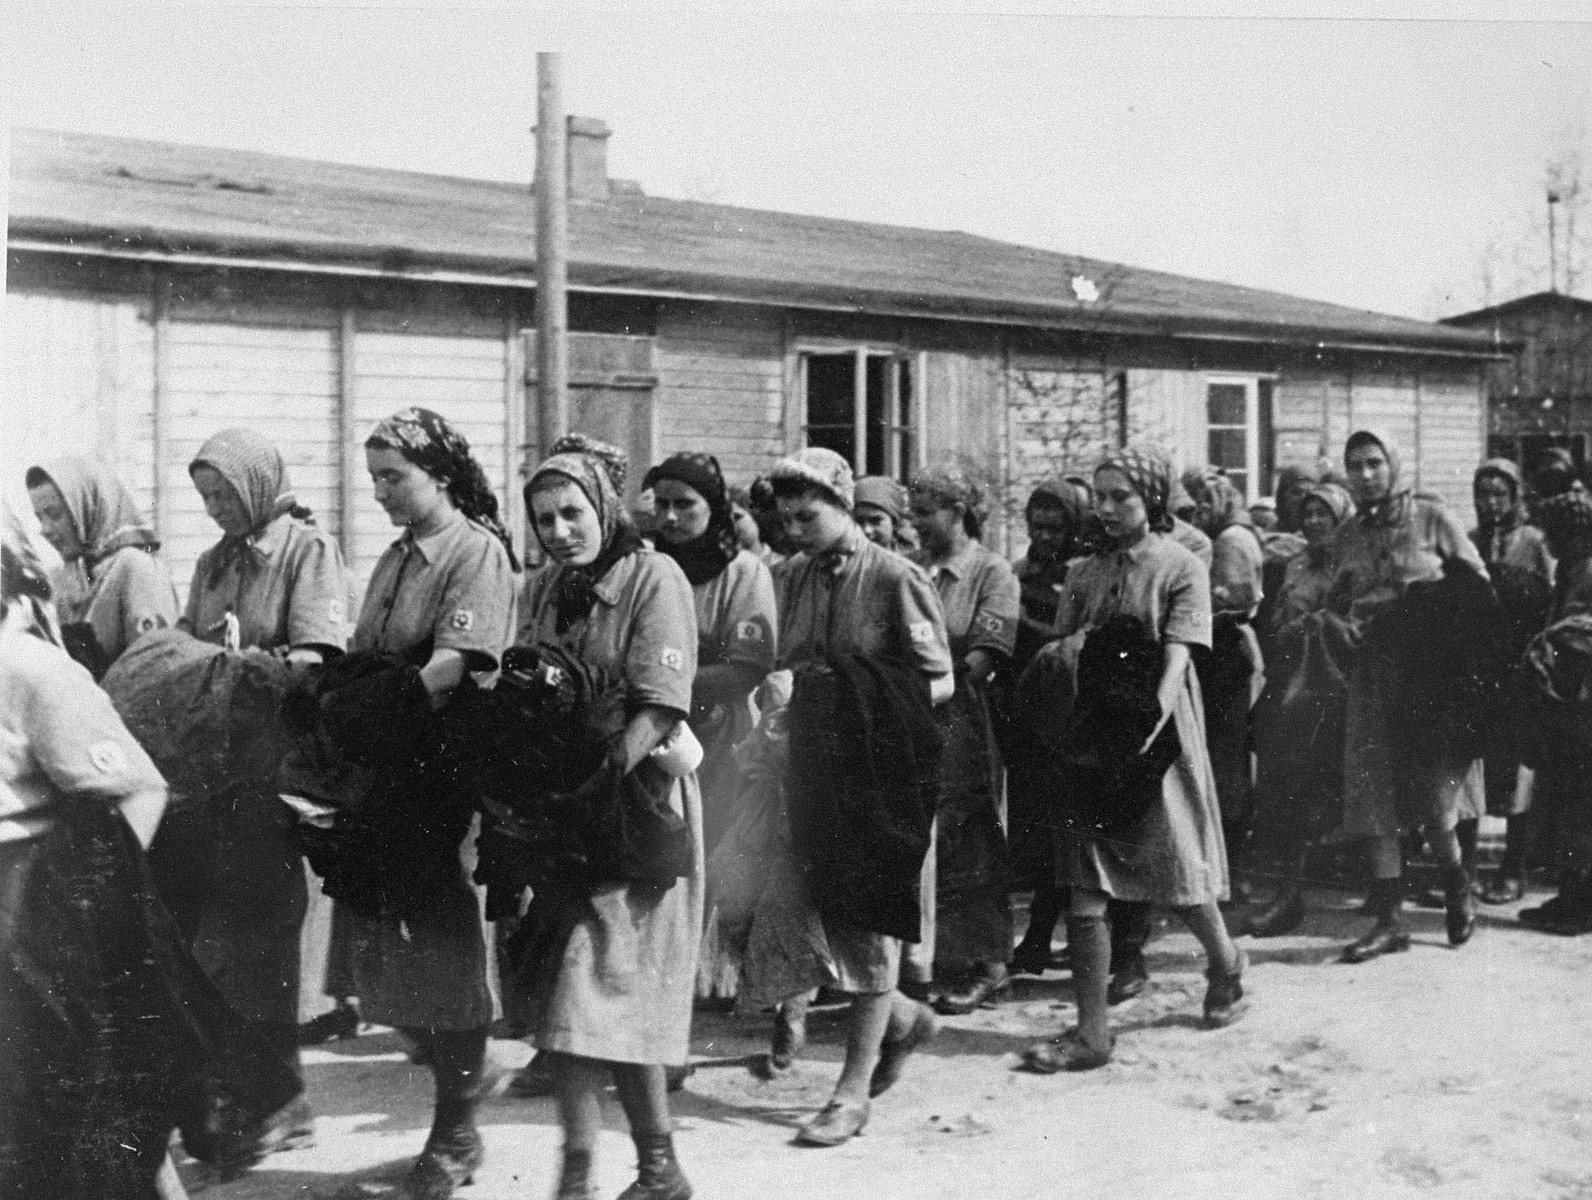 Jewish women from Subcarpathian Rus who have been selected for forced labor at Auschwitz-Birkenau, march toward their barracks after disinfection and headshaving.  Among those pictured from left to right are Martha Birnbaum Younger, Dora Birnbaum, Erna Birnbaum Gottesman, Gina Liebermann or Etush Zelmanovic (later Esther Moses),  Agi Katz Rubin, and Mignon Gottesman (now Bretzholz), Maidi Birnbaum and Rozi Feldman.